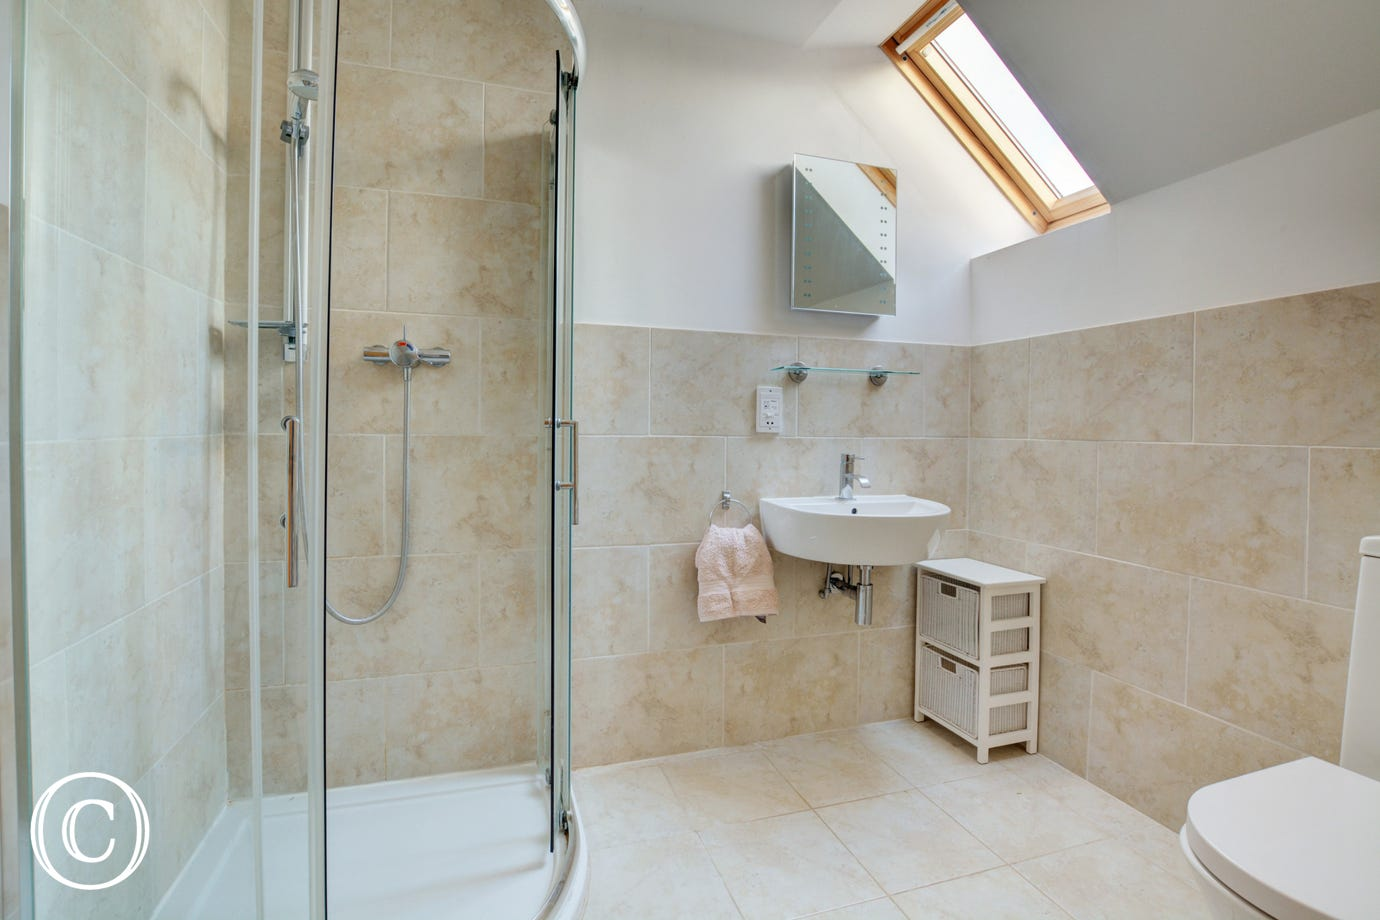 En-Suite to bedroom 2 with shower cubicle, washbasin and wc